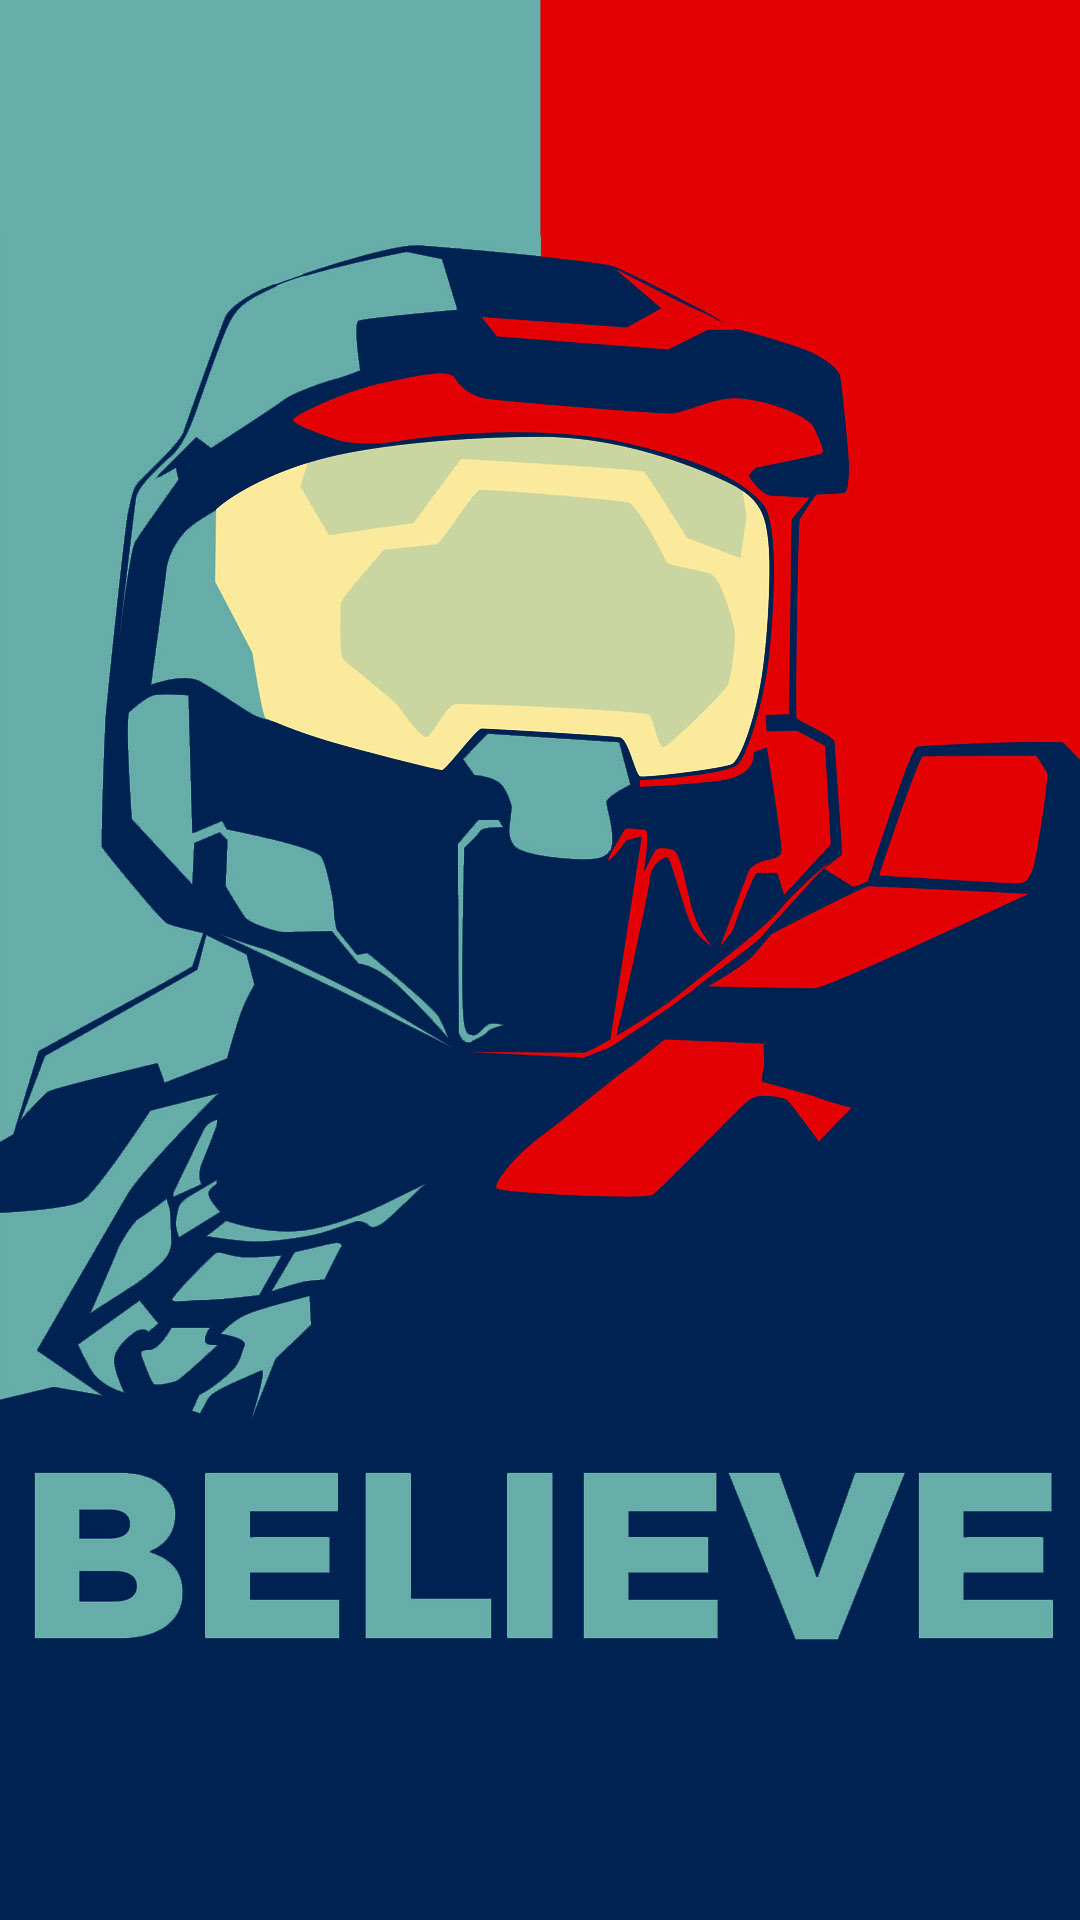 Halo Believe vector